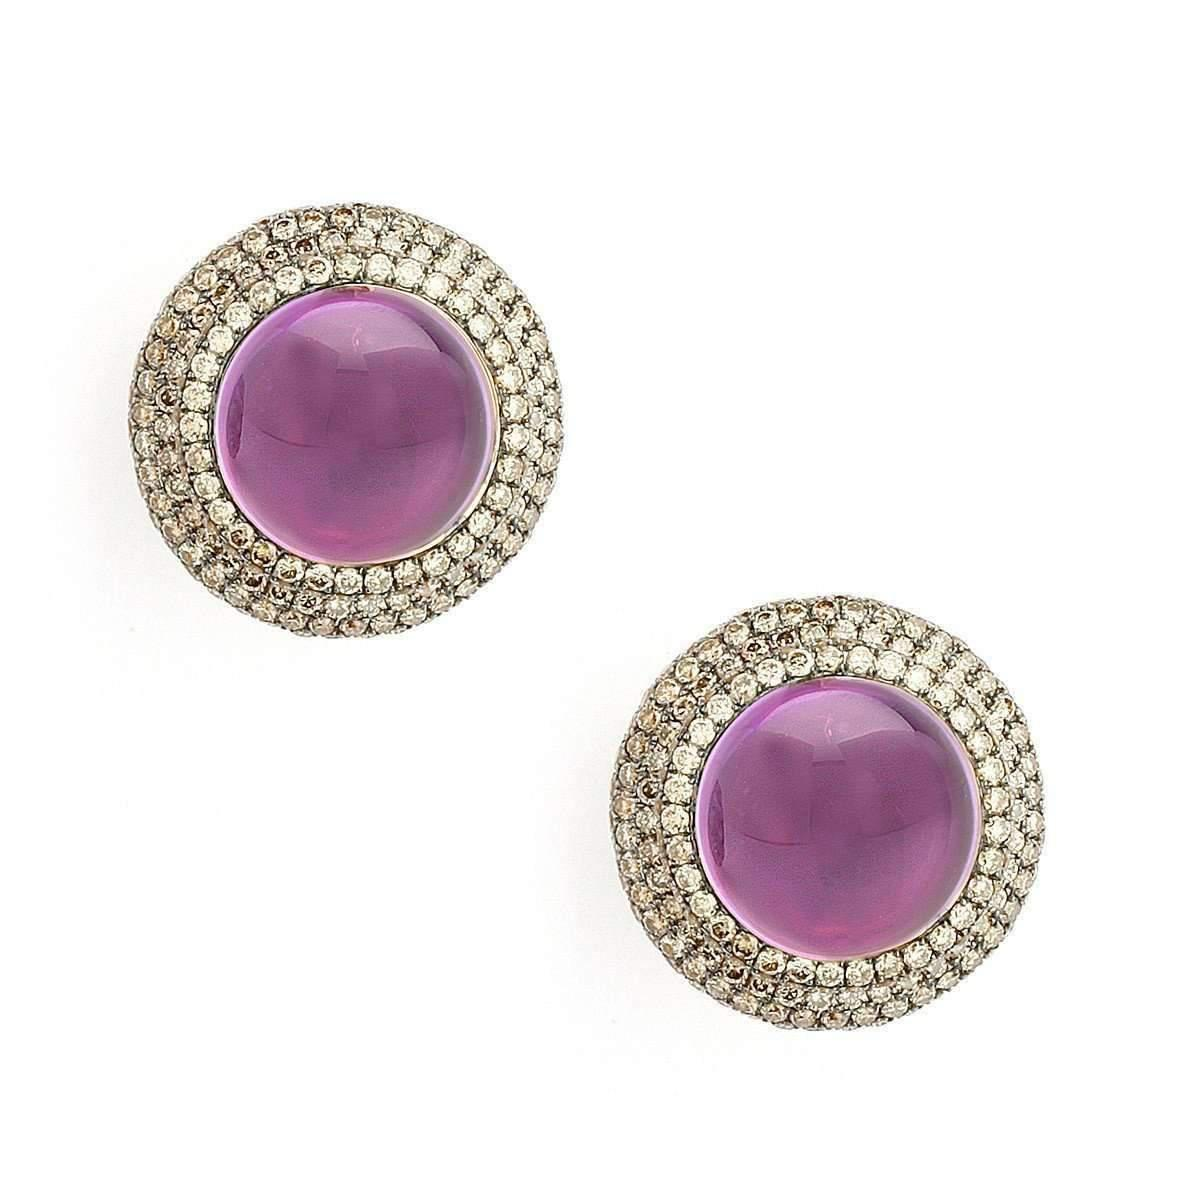 Syna 18kt Amethyst Sugarloaf Earrings cbH9s